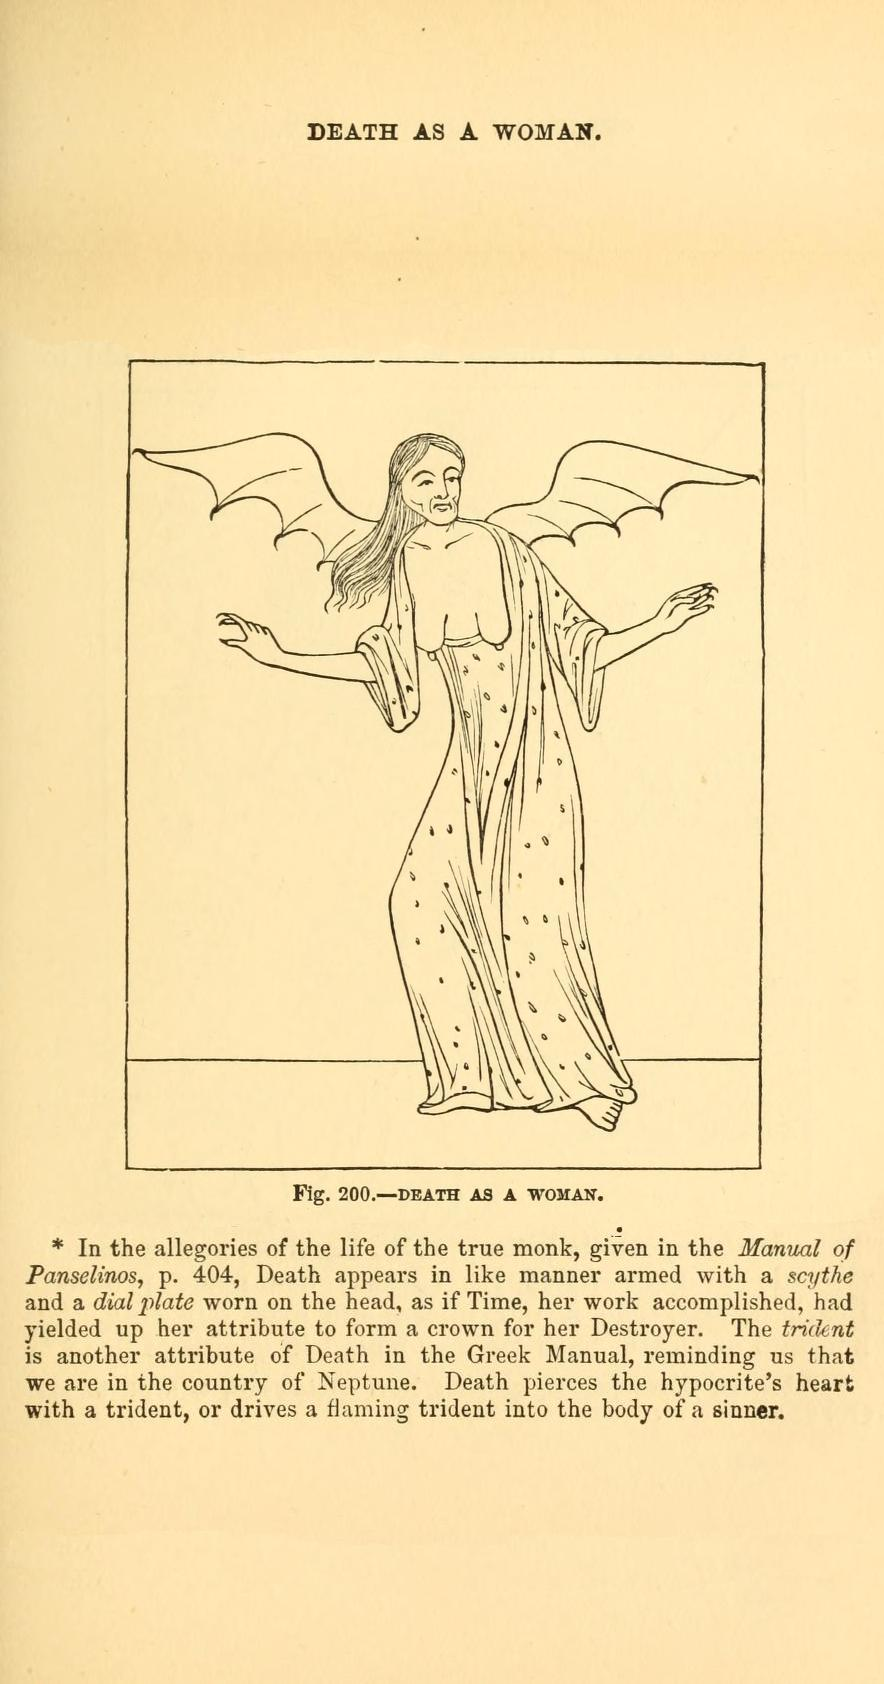 the-two-germanys :    Death as a woman.     Christian Iconography    Adolphe Napoléon Didron London: George Bell & Sons, 1851.